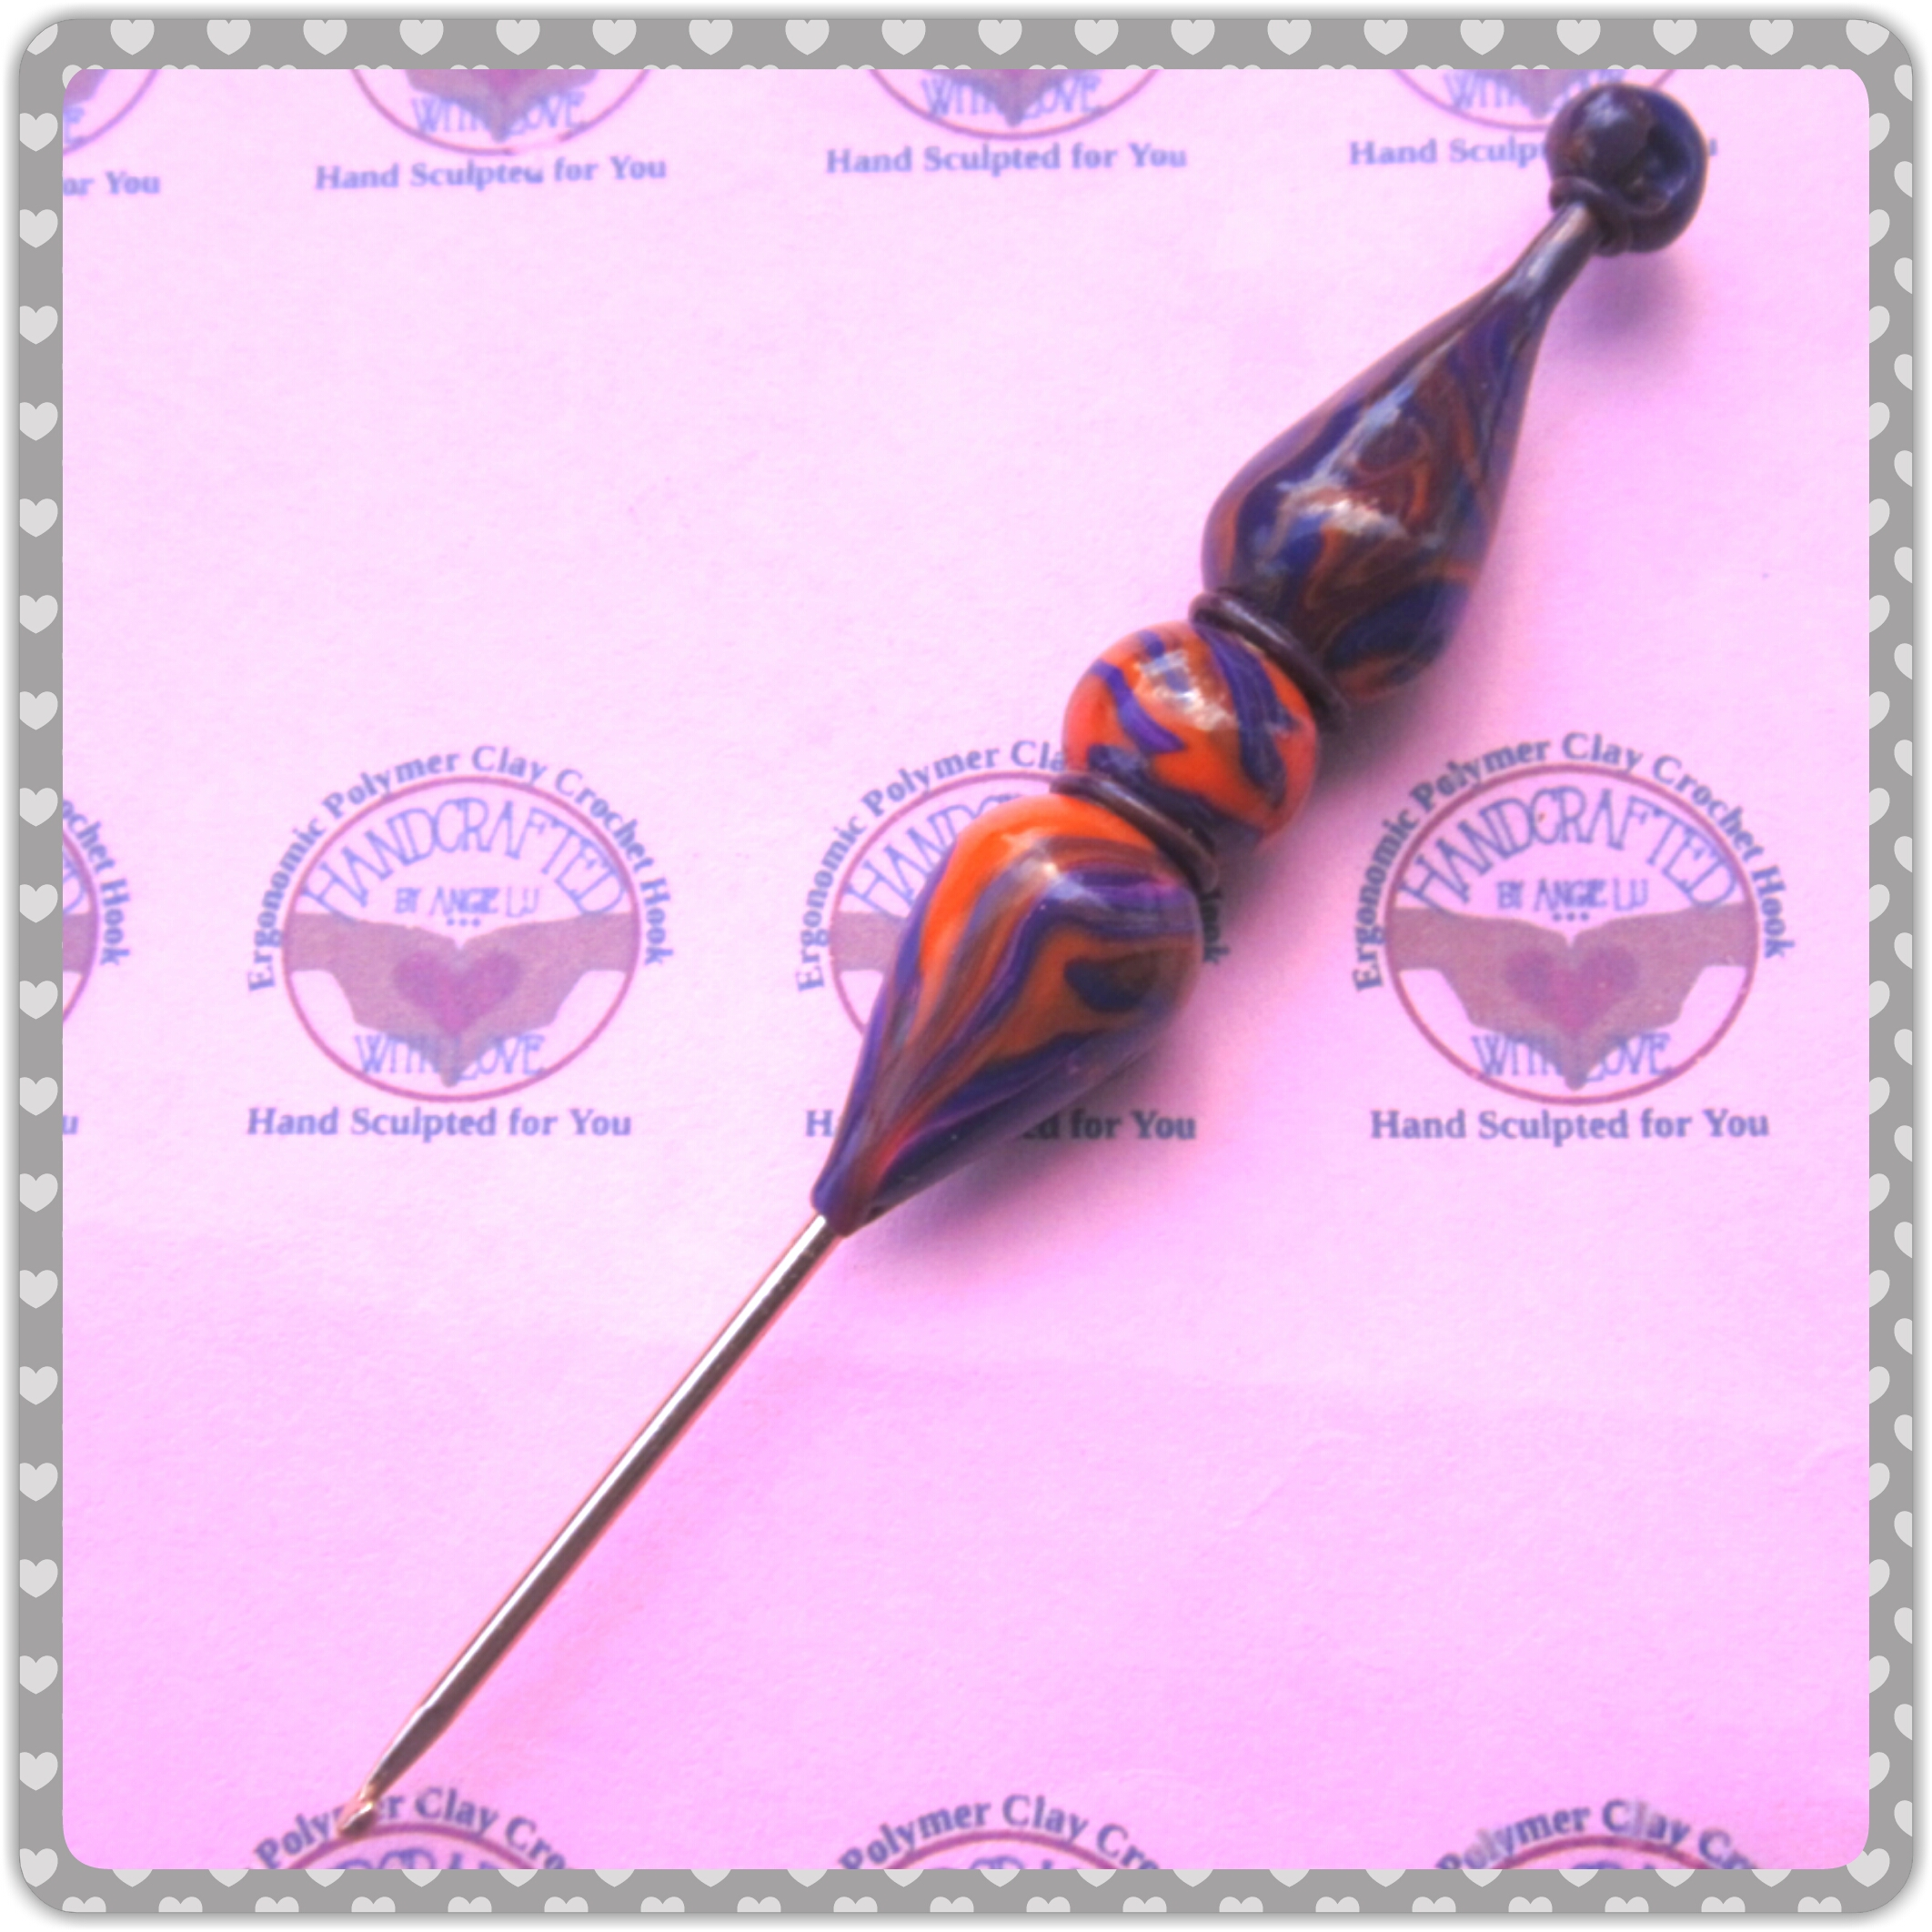 Marbled Glam Crochet Hook Size B Boye Brand Ready To Ship By